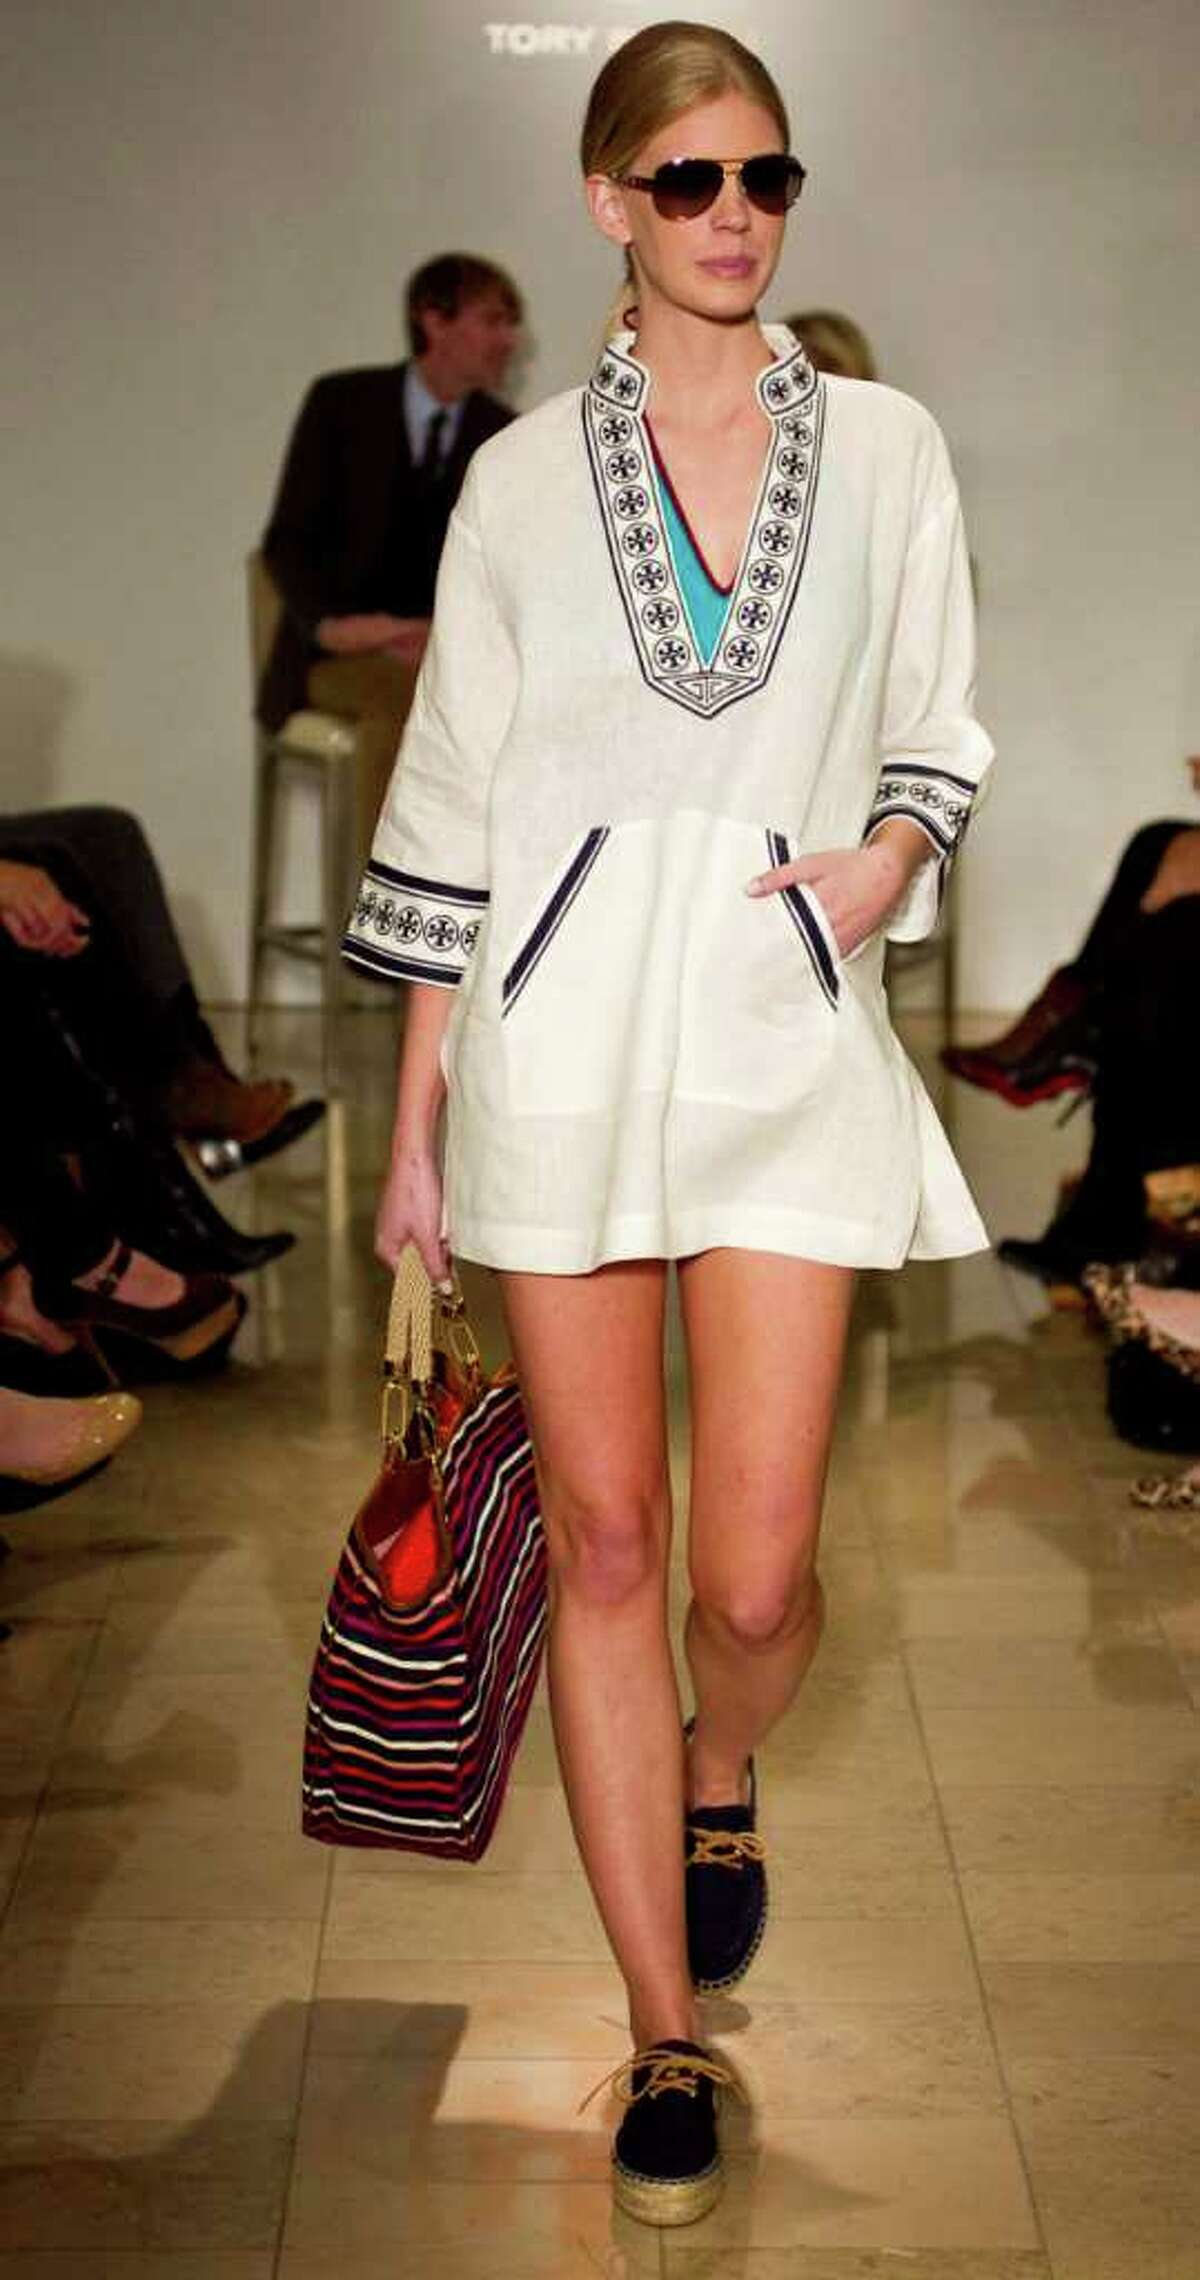 Tory Burch's resort line features her famous tunic style.